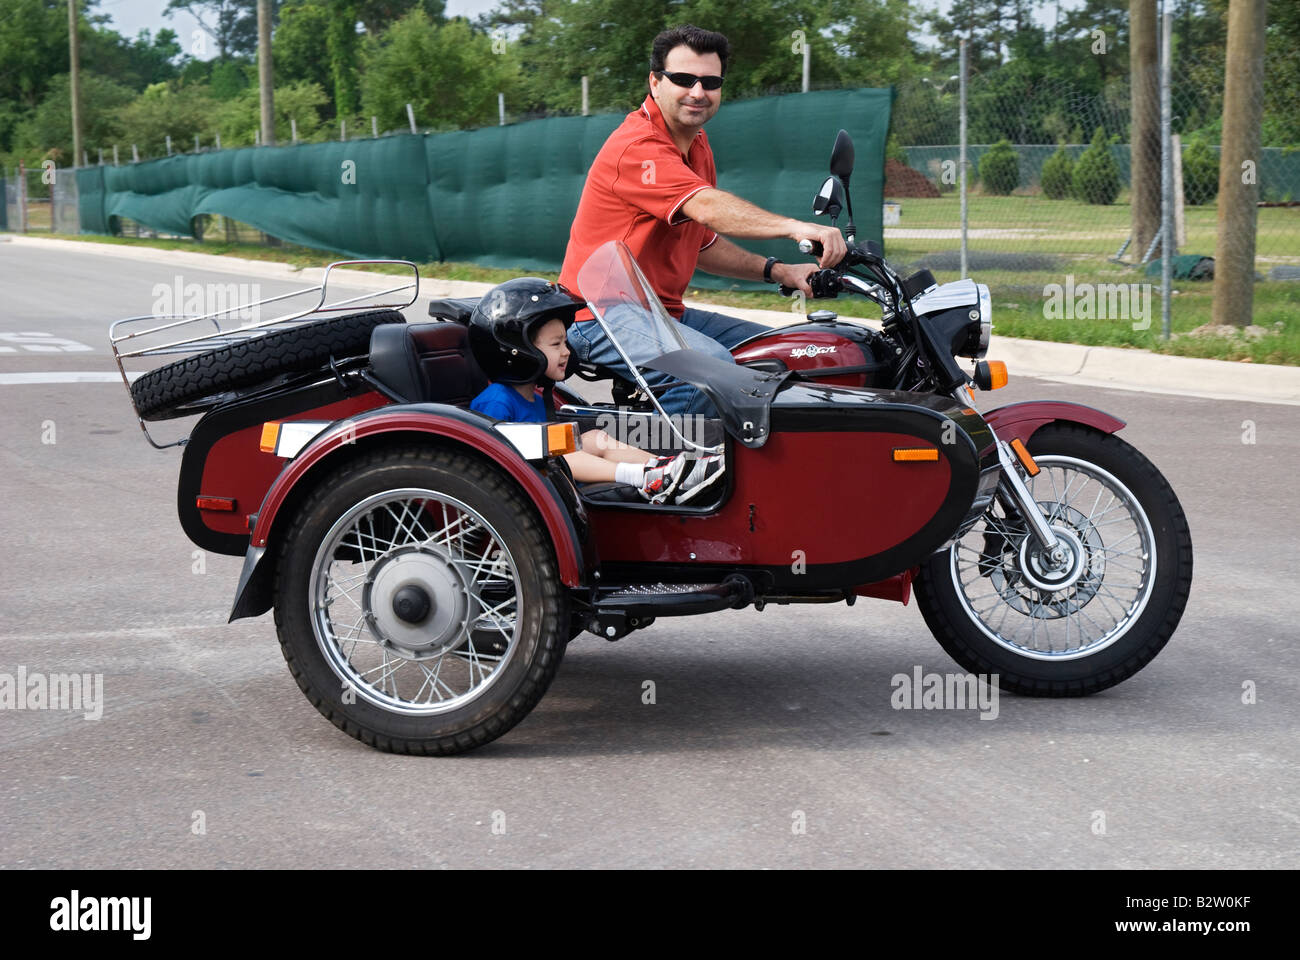 man on motorcycle with child in sidecar gainesville florida ural ypan stock photo royalty free. Black Bedroom Furniture Sets. Home Design Ideas